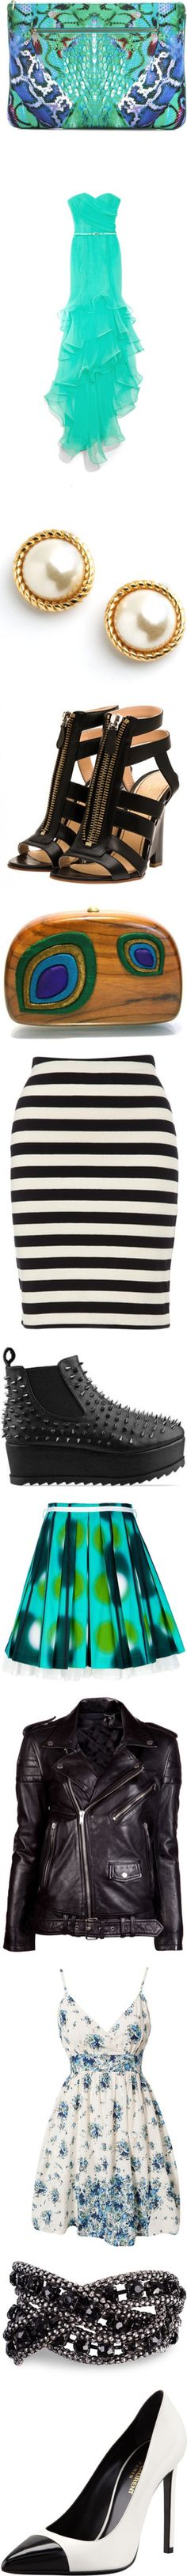 """Top Products for Apr 27th, 2013"" by polyvore ❤ liked on Polyvore"